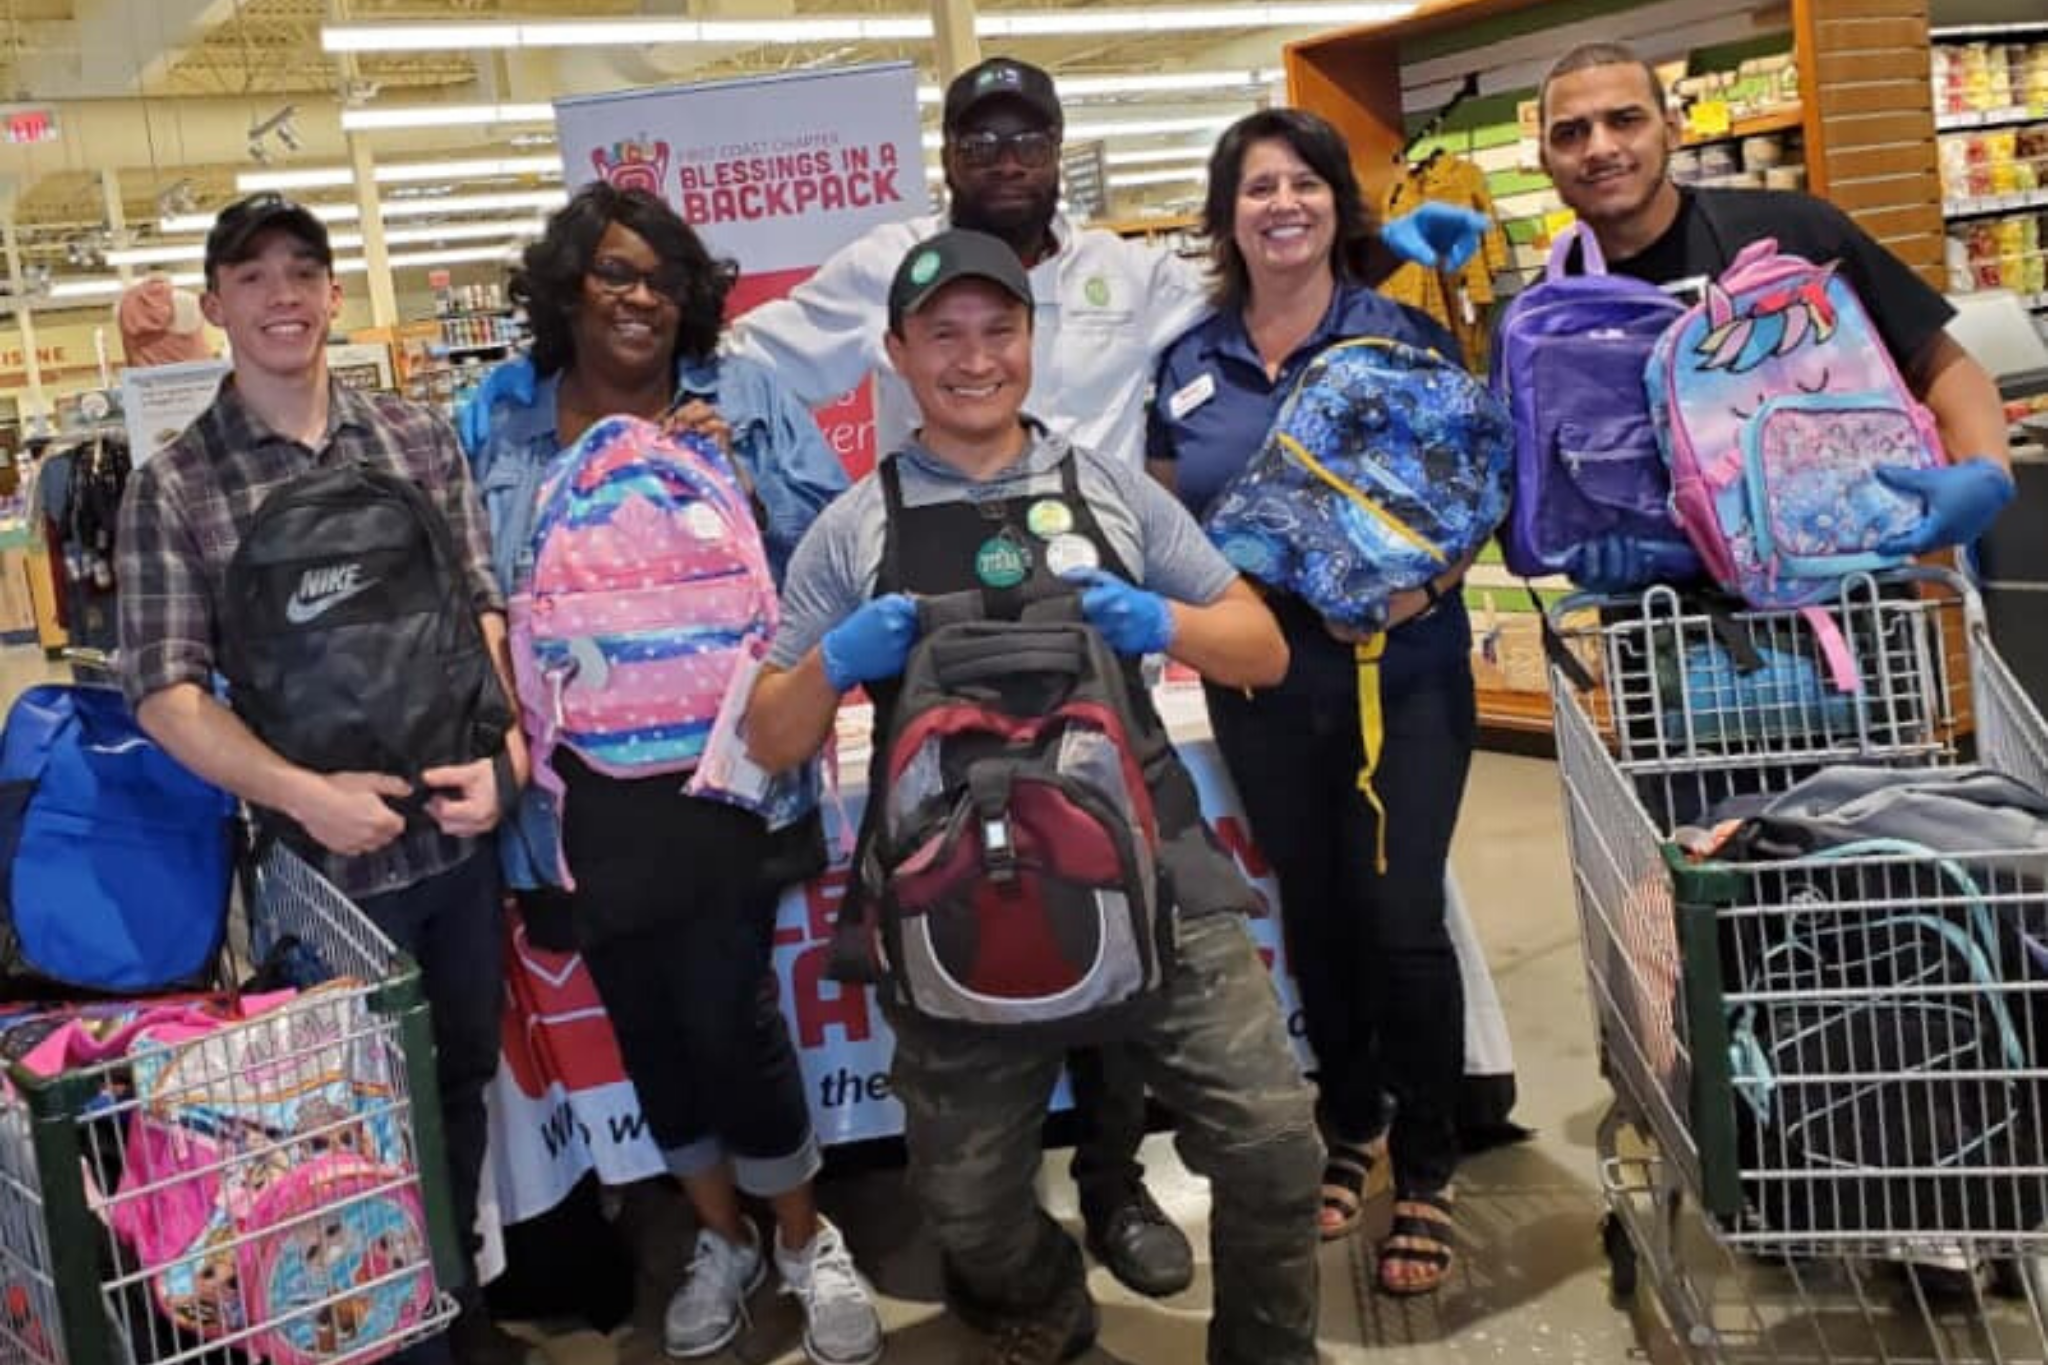 Photo of people holding back packs